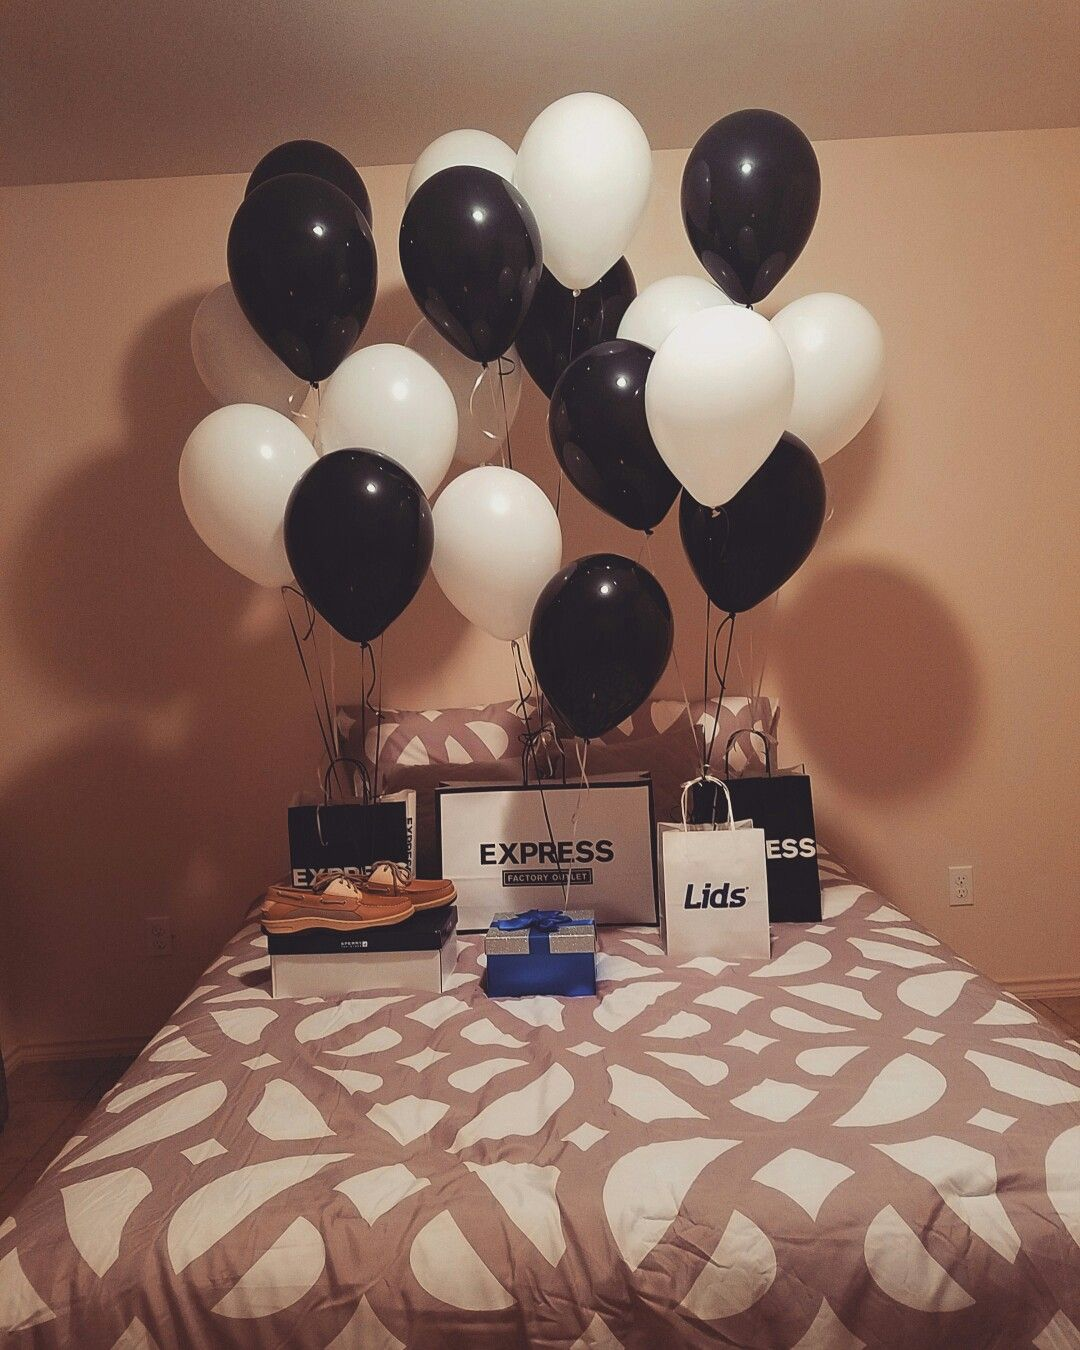 Bedroom Surprise For Him Balloons Husband Also Dream Ts Rh Co